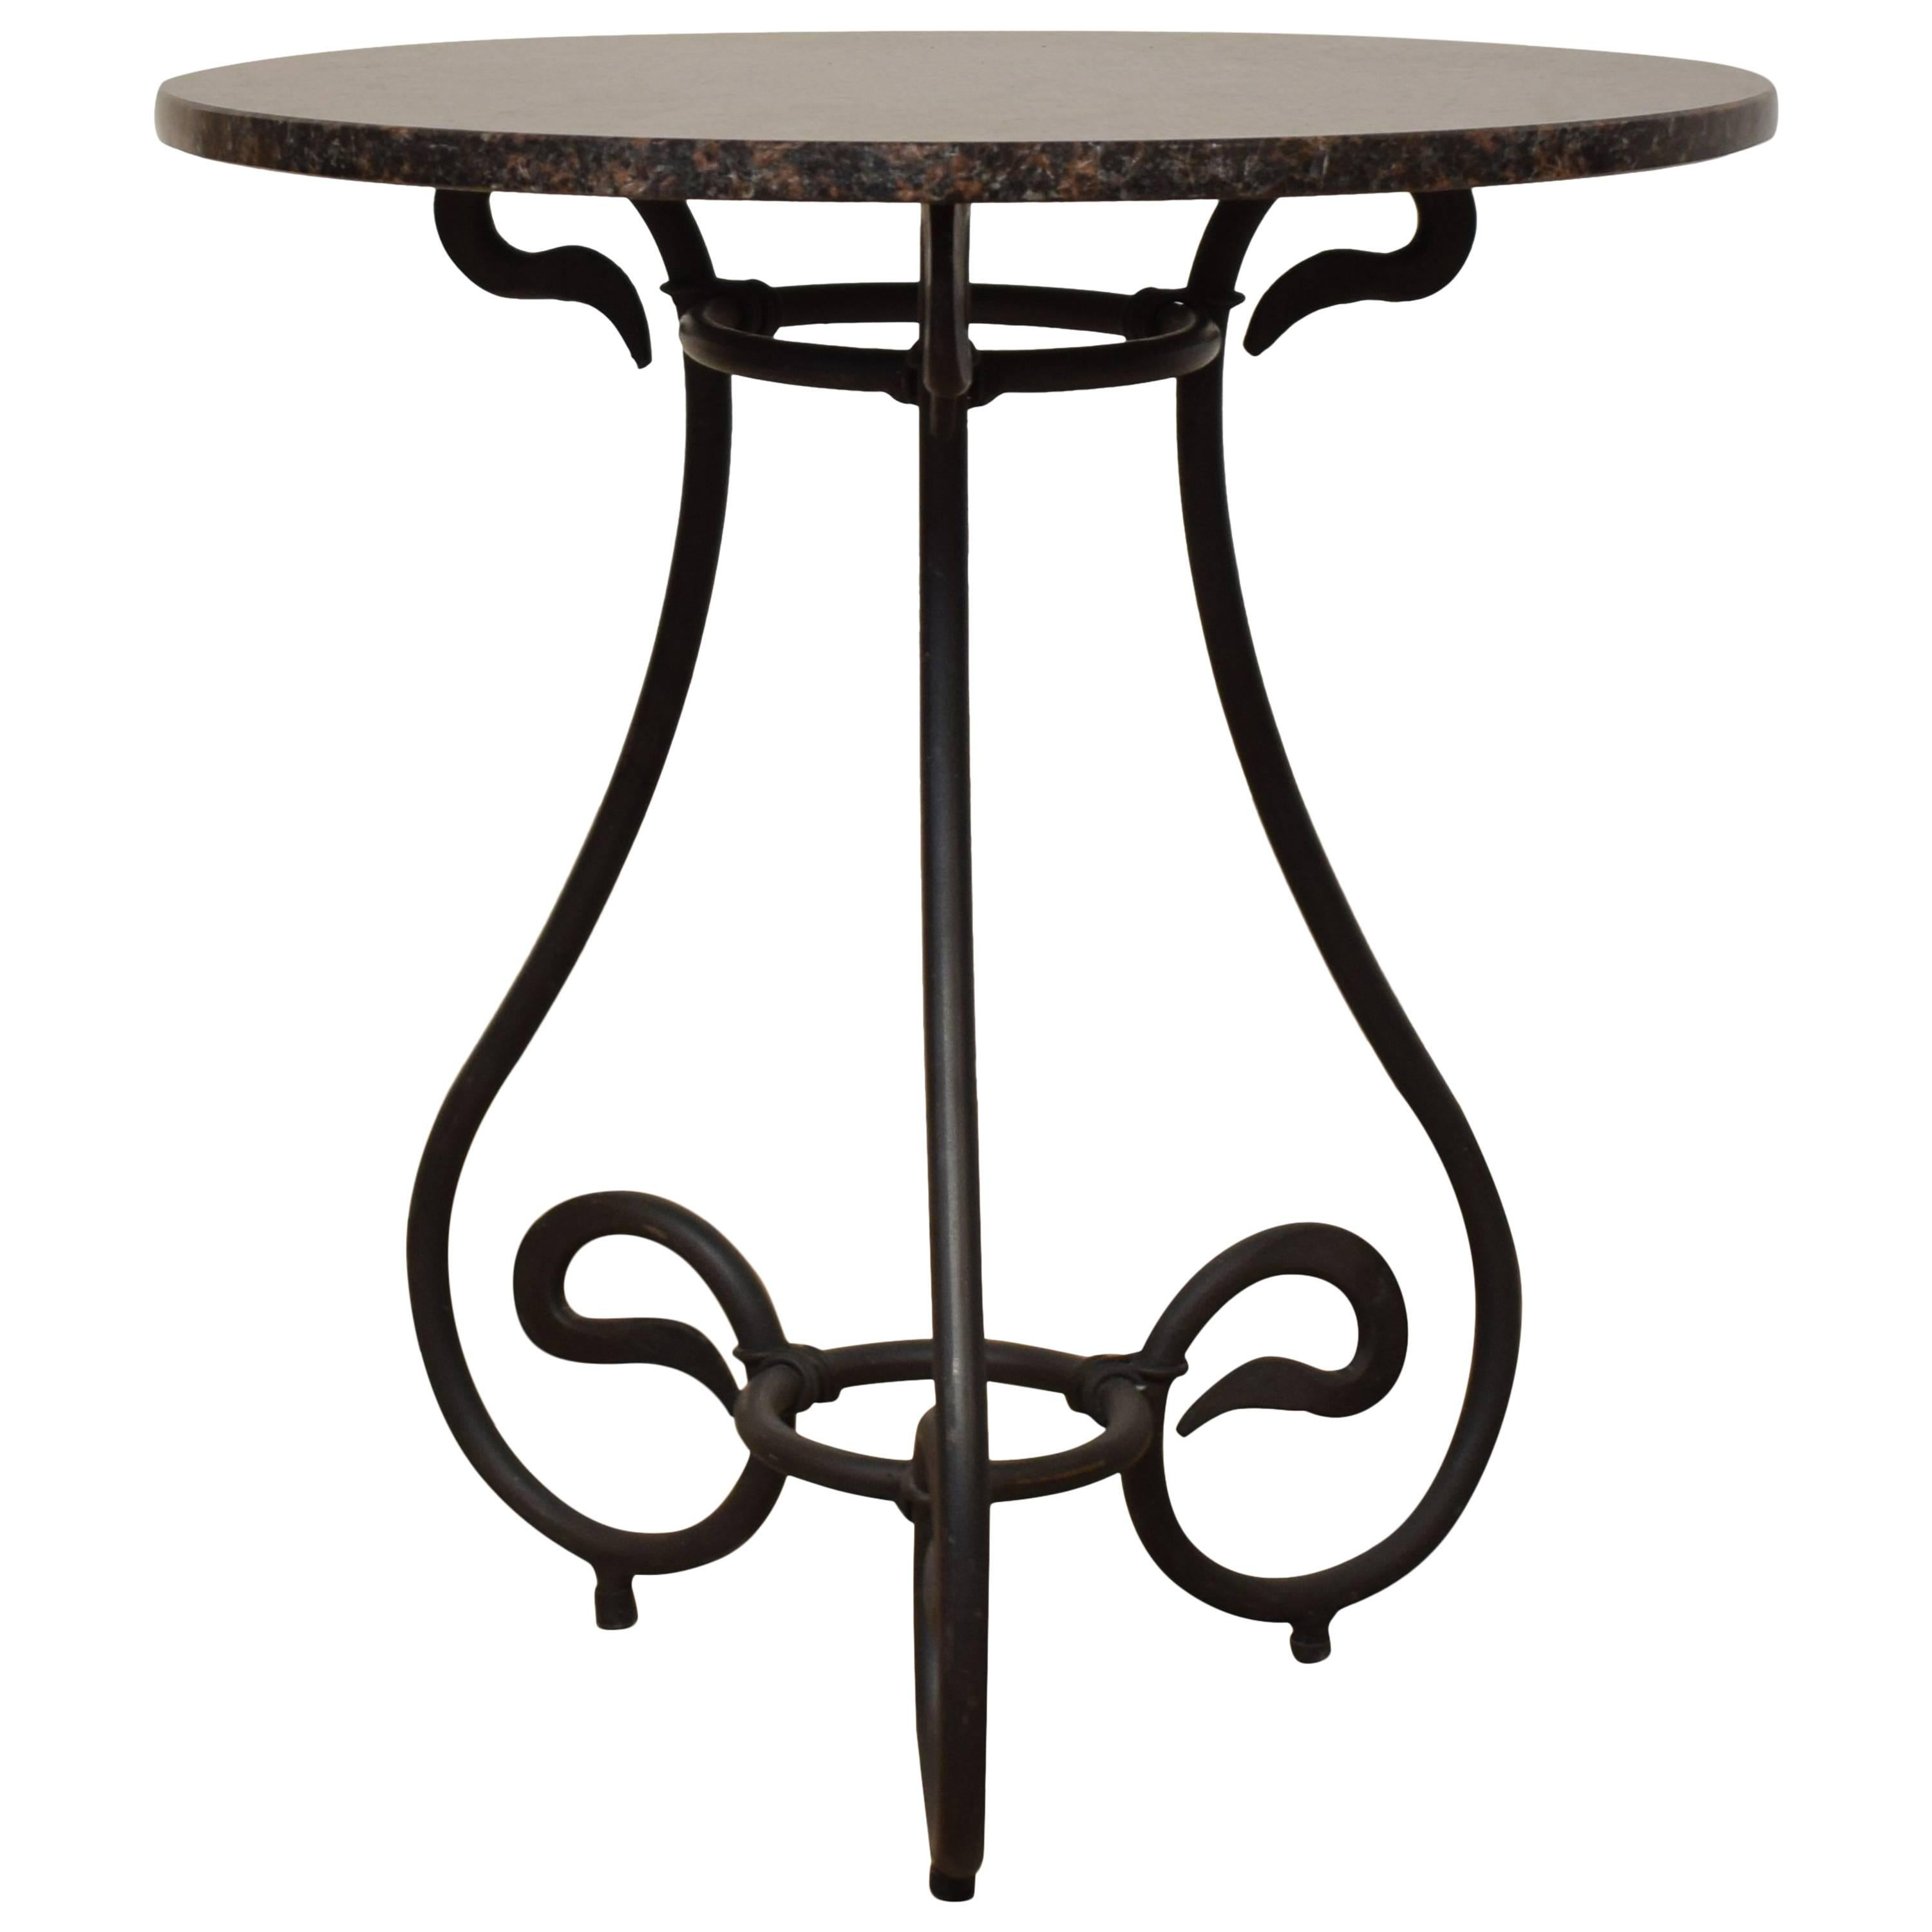 1950s Black Forged Iron Side Table with Granite Top